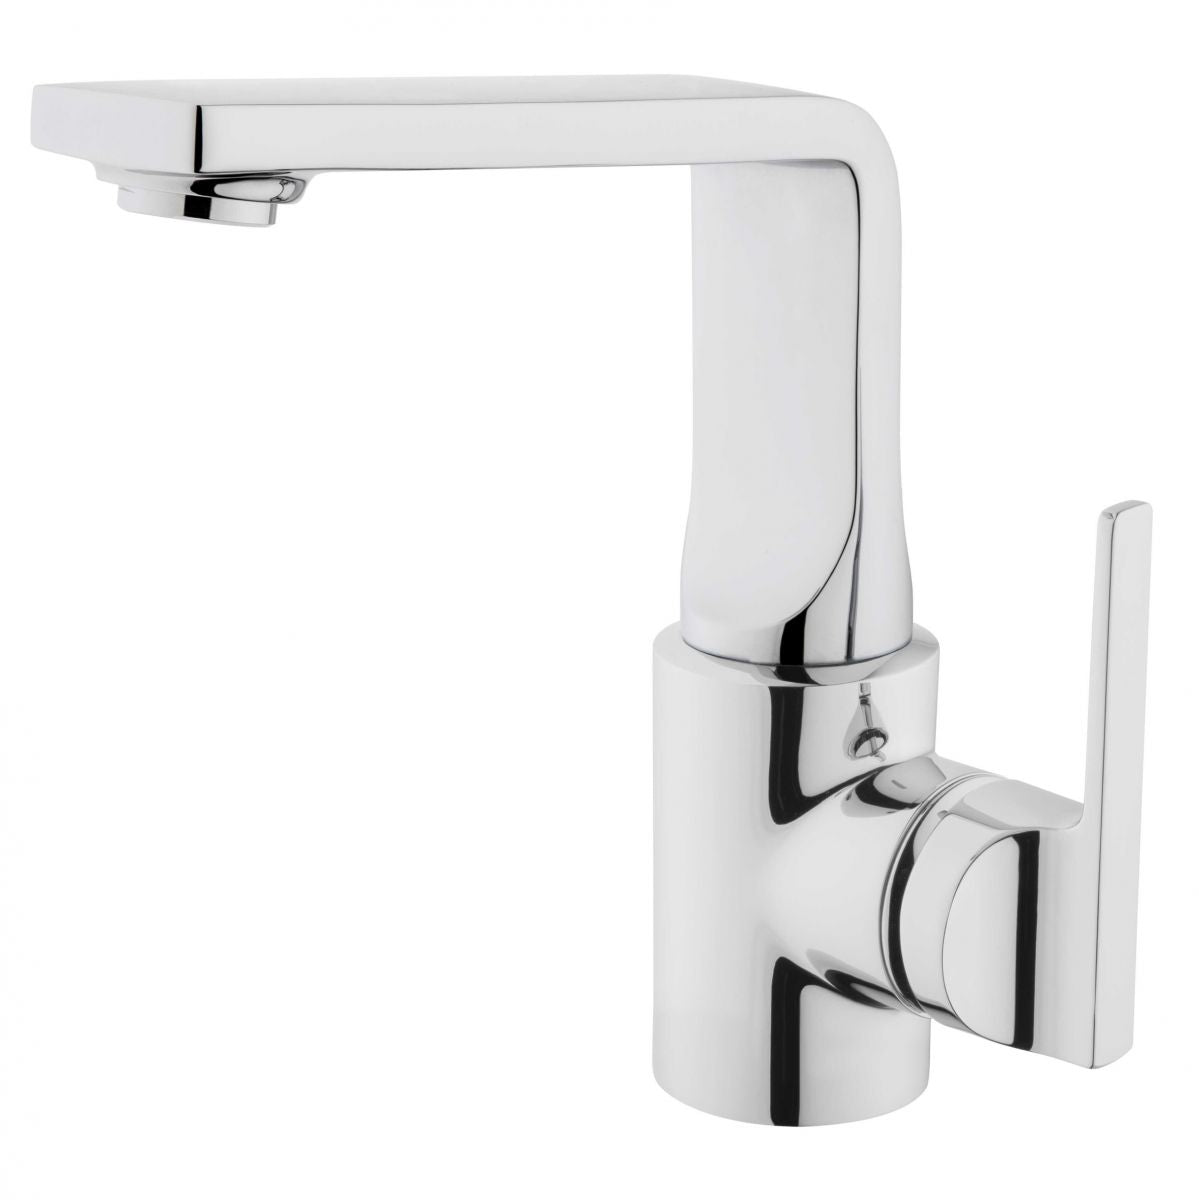 Suit L Monobloc Basin Mixer - Blue Sky Bathrooms Ltd